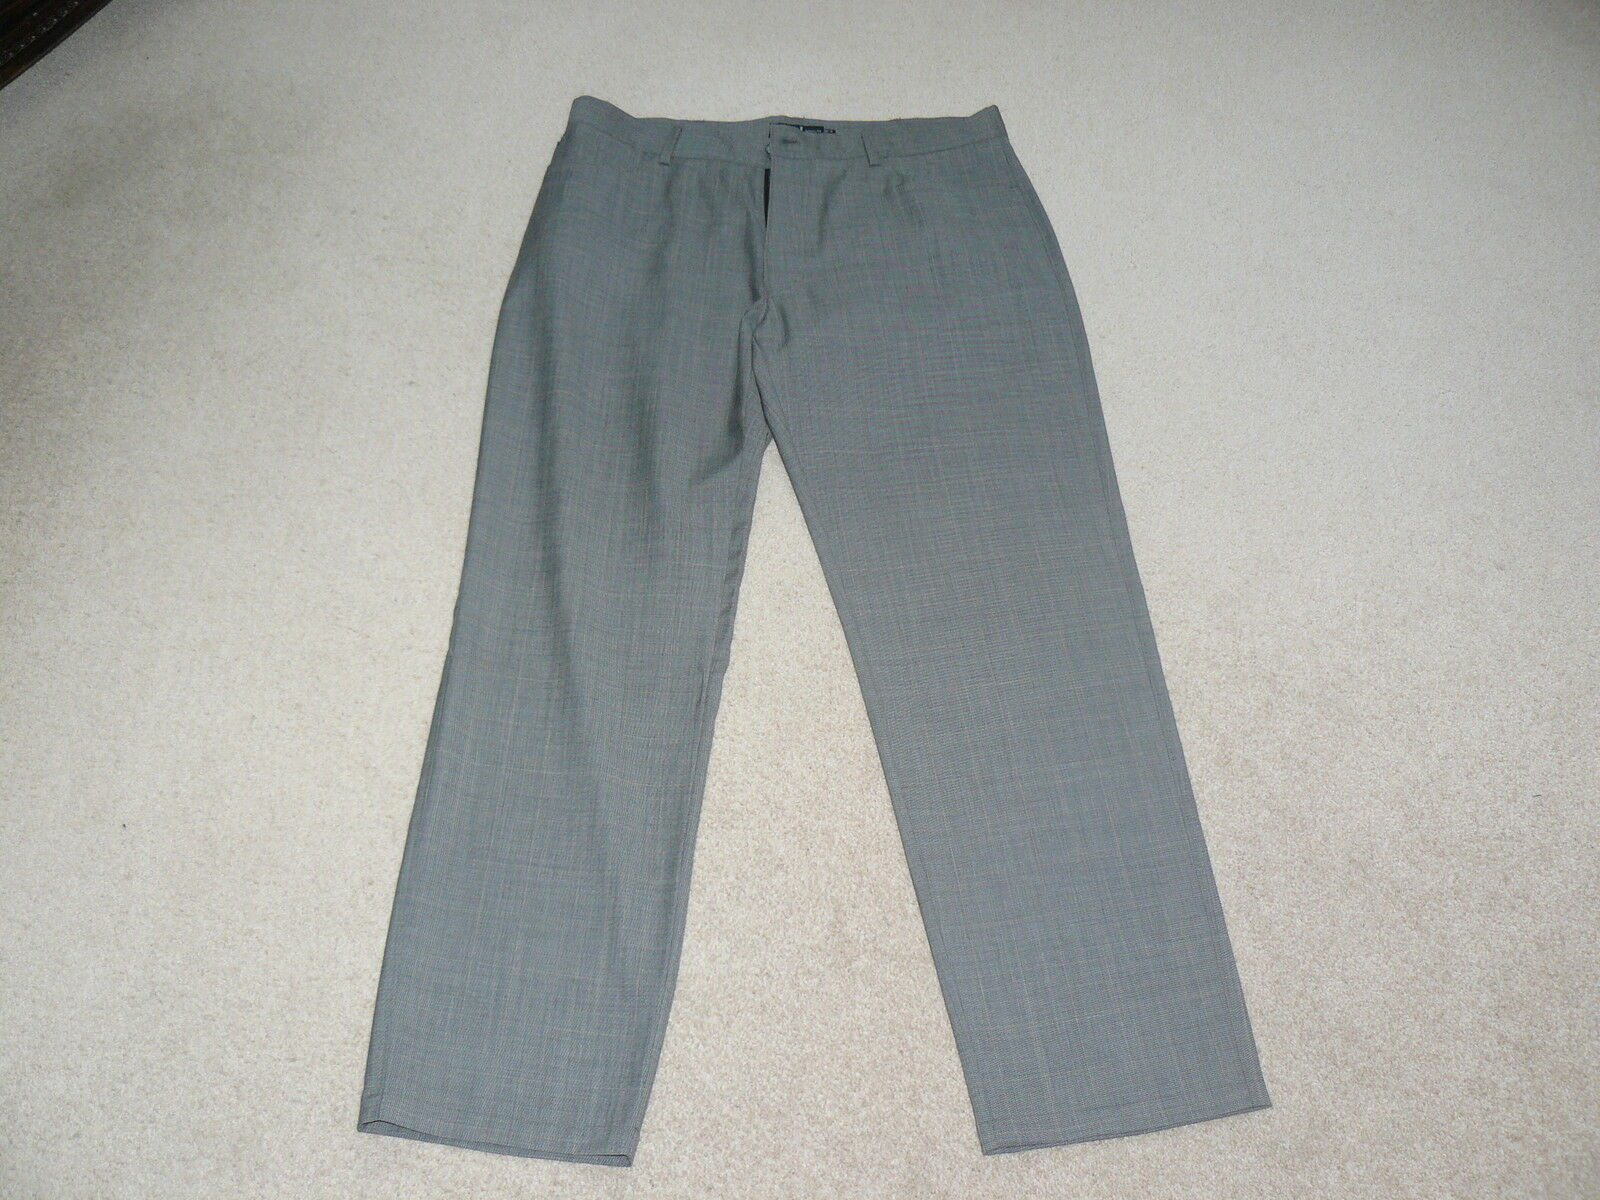 GENUINE 'NEXT' GREY TROUSERS (36 REG) - BNWOT